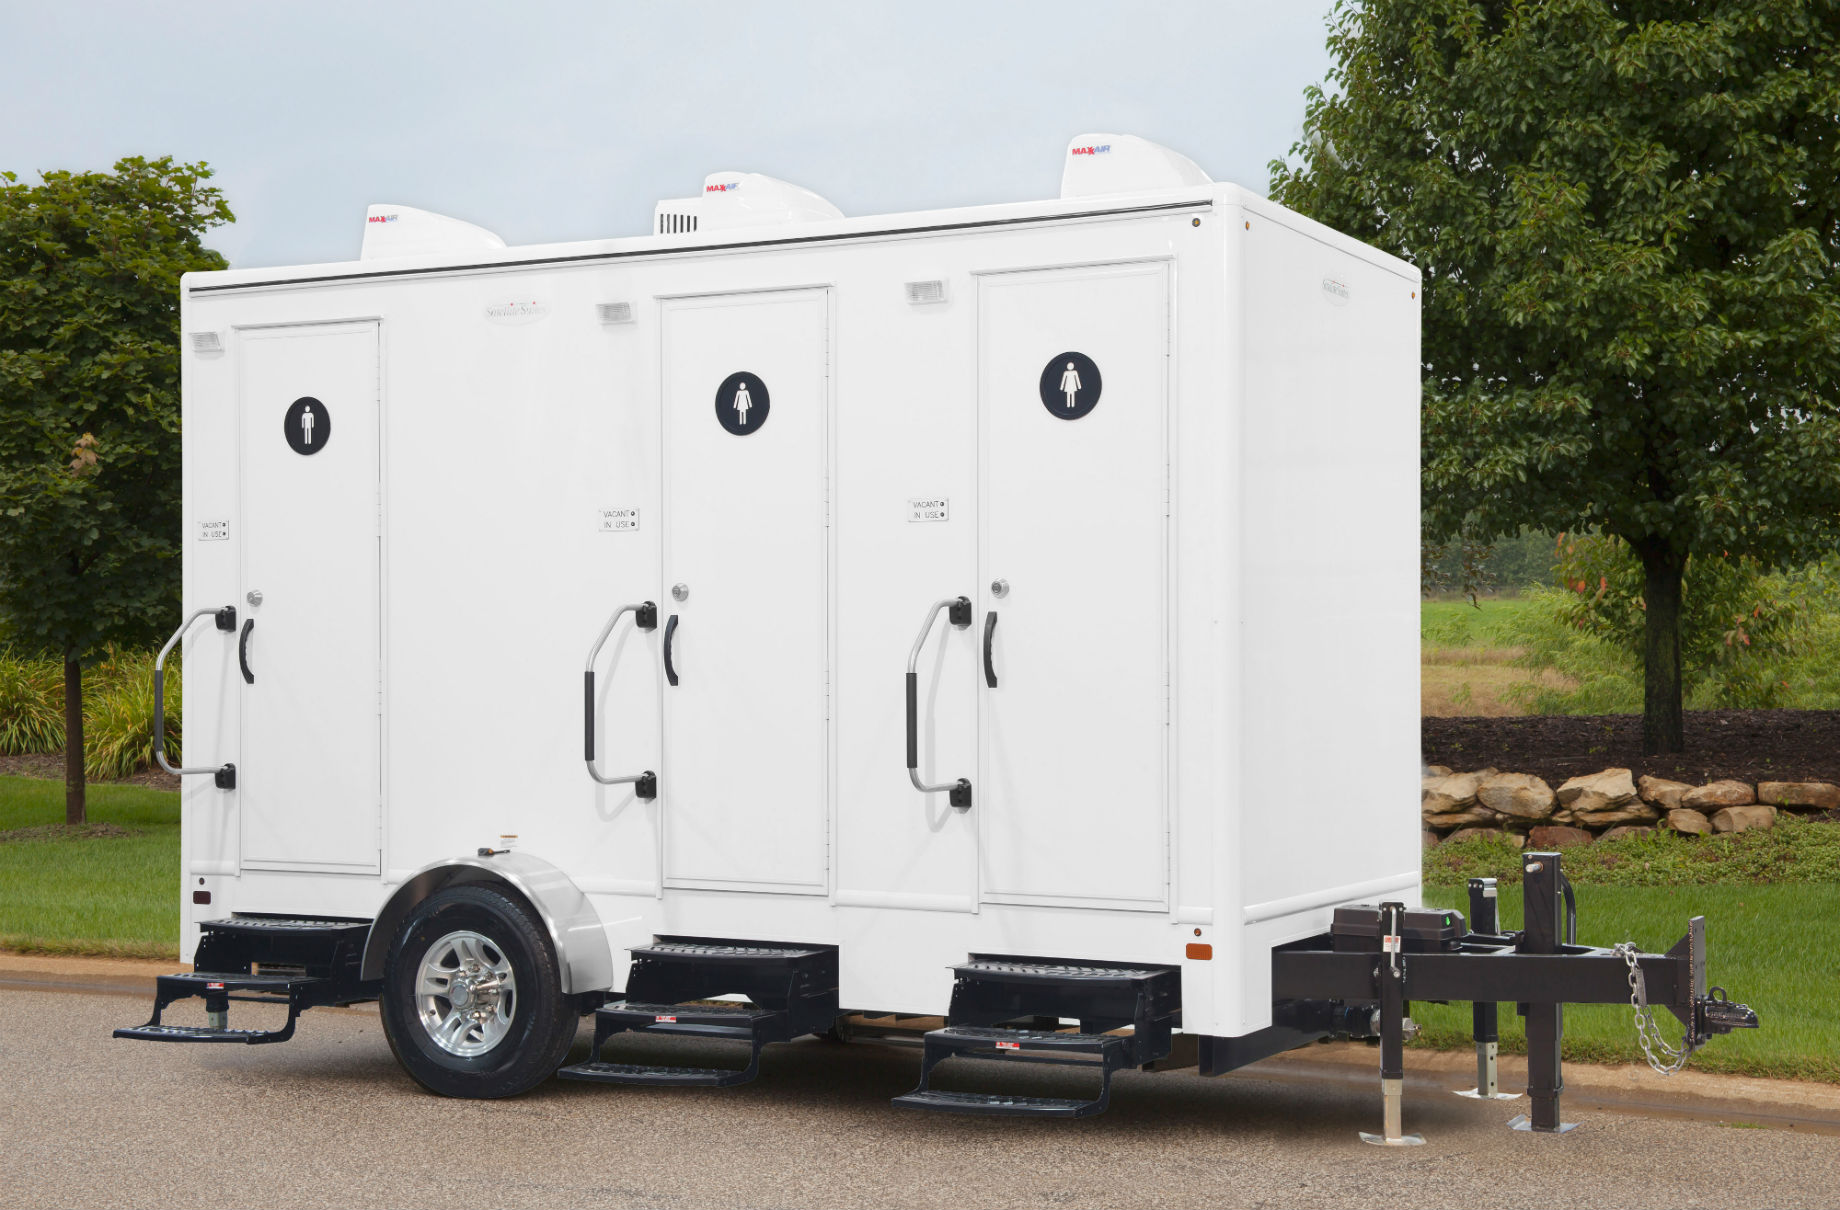 Restroom Trailer Rentals And Leases KWIPPED - Bathroom trailer rentals